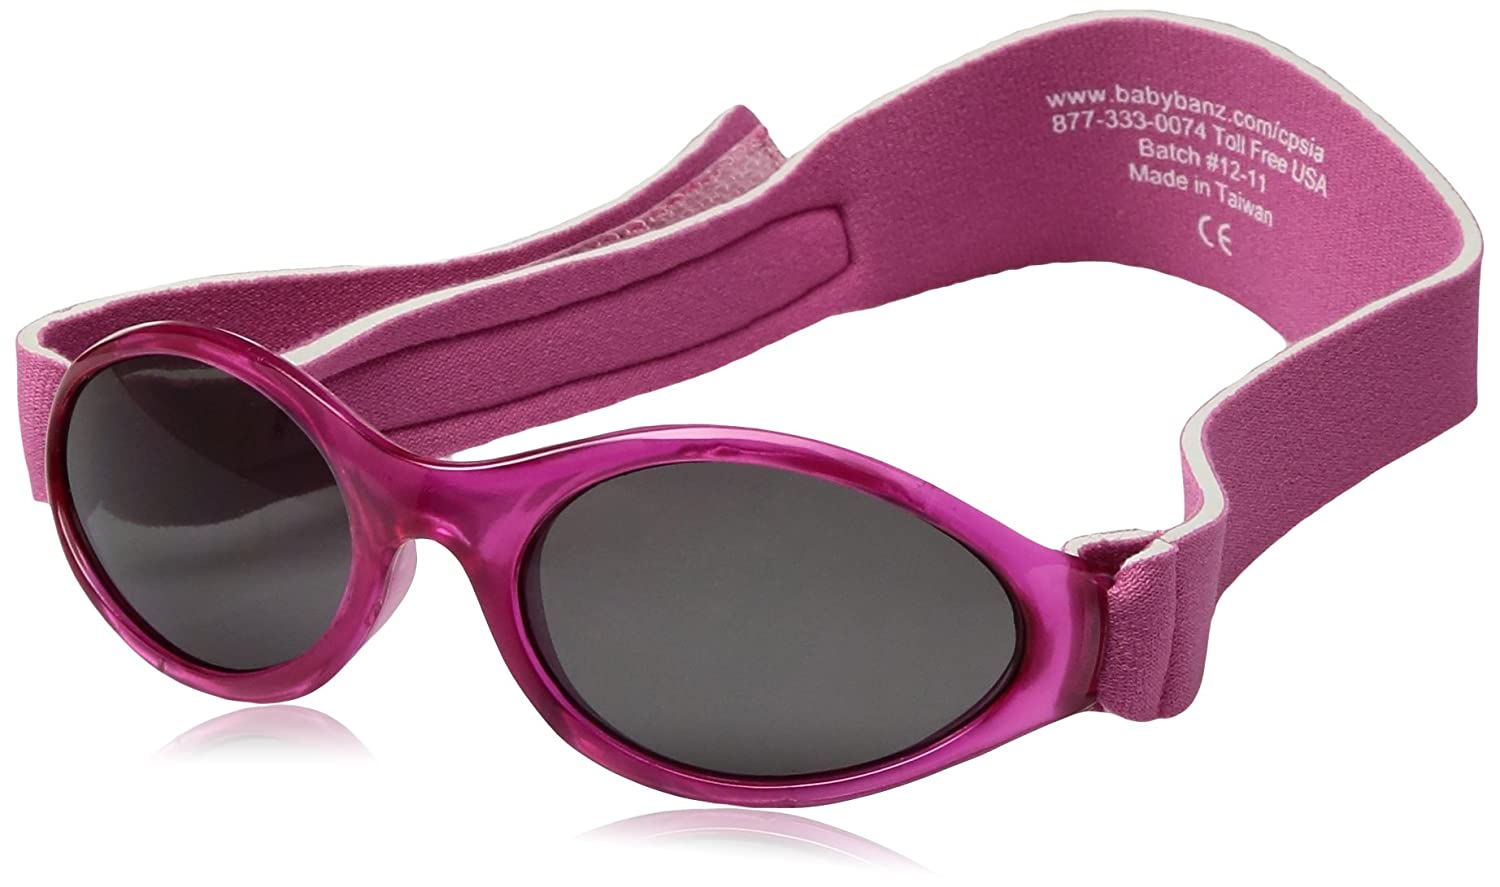 Baby Banz Adventure Sunglasses - Ages 0-2 years BBN039